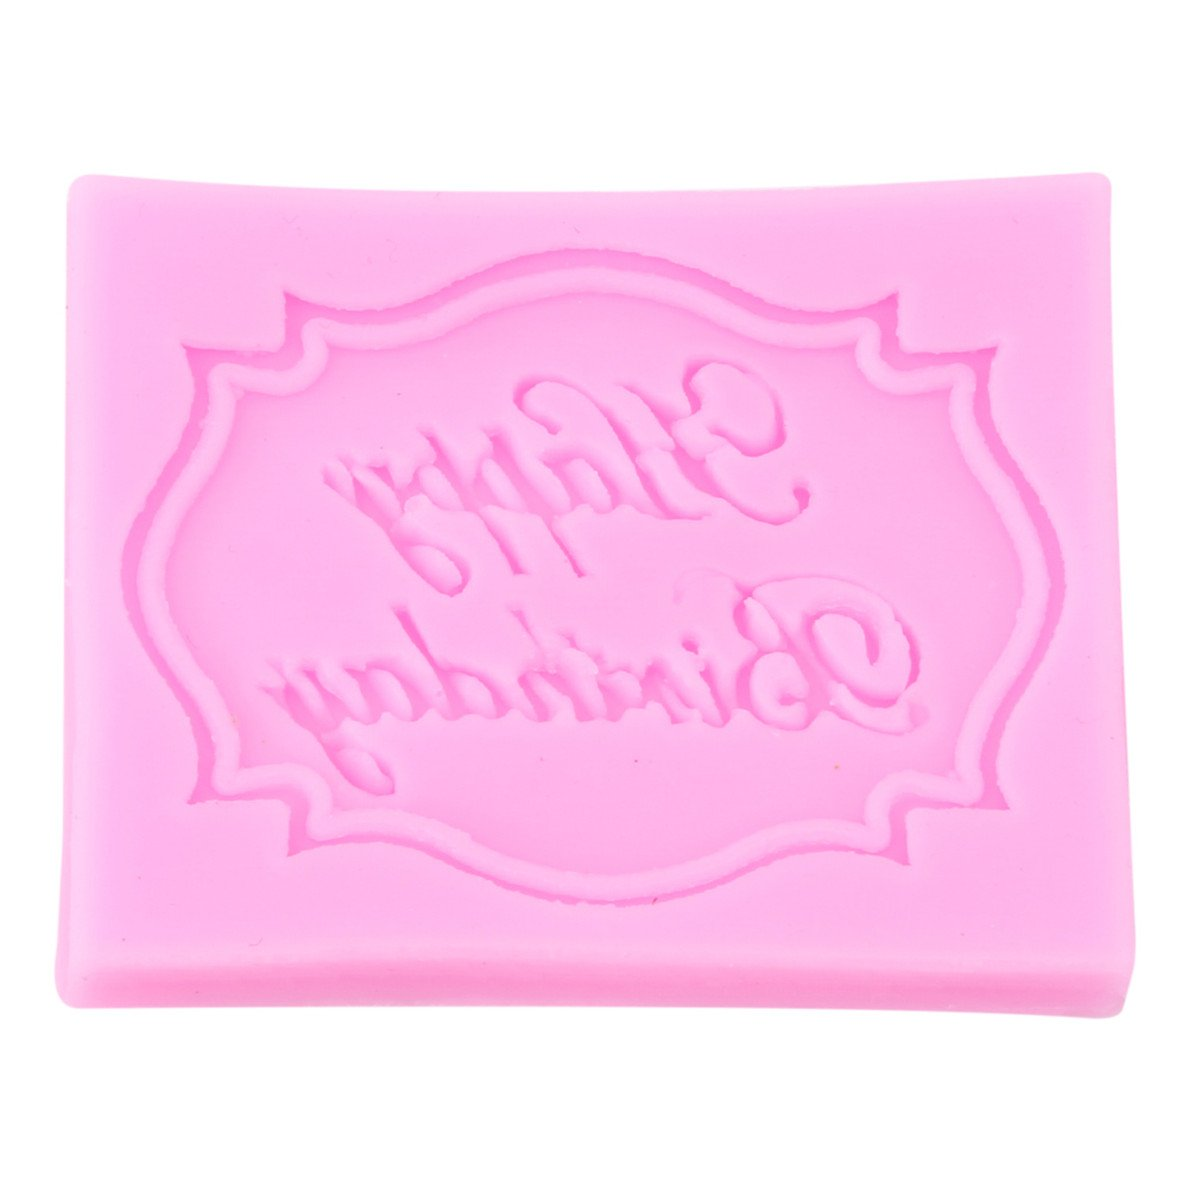 CH Pink Happy Birthday Silicone Molds Chocolate Fondant Letter Form Of The Alphabet Cake Decoration Tools Baking Utensils